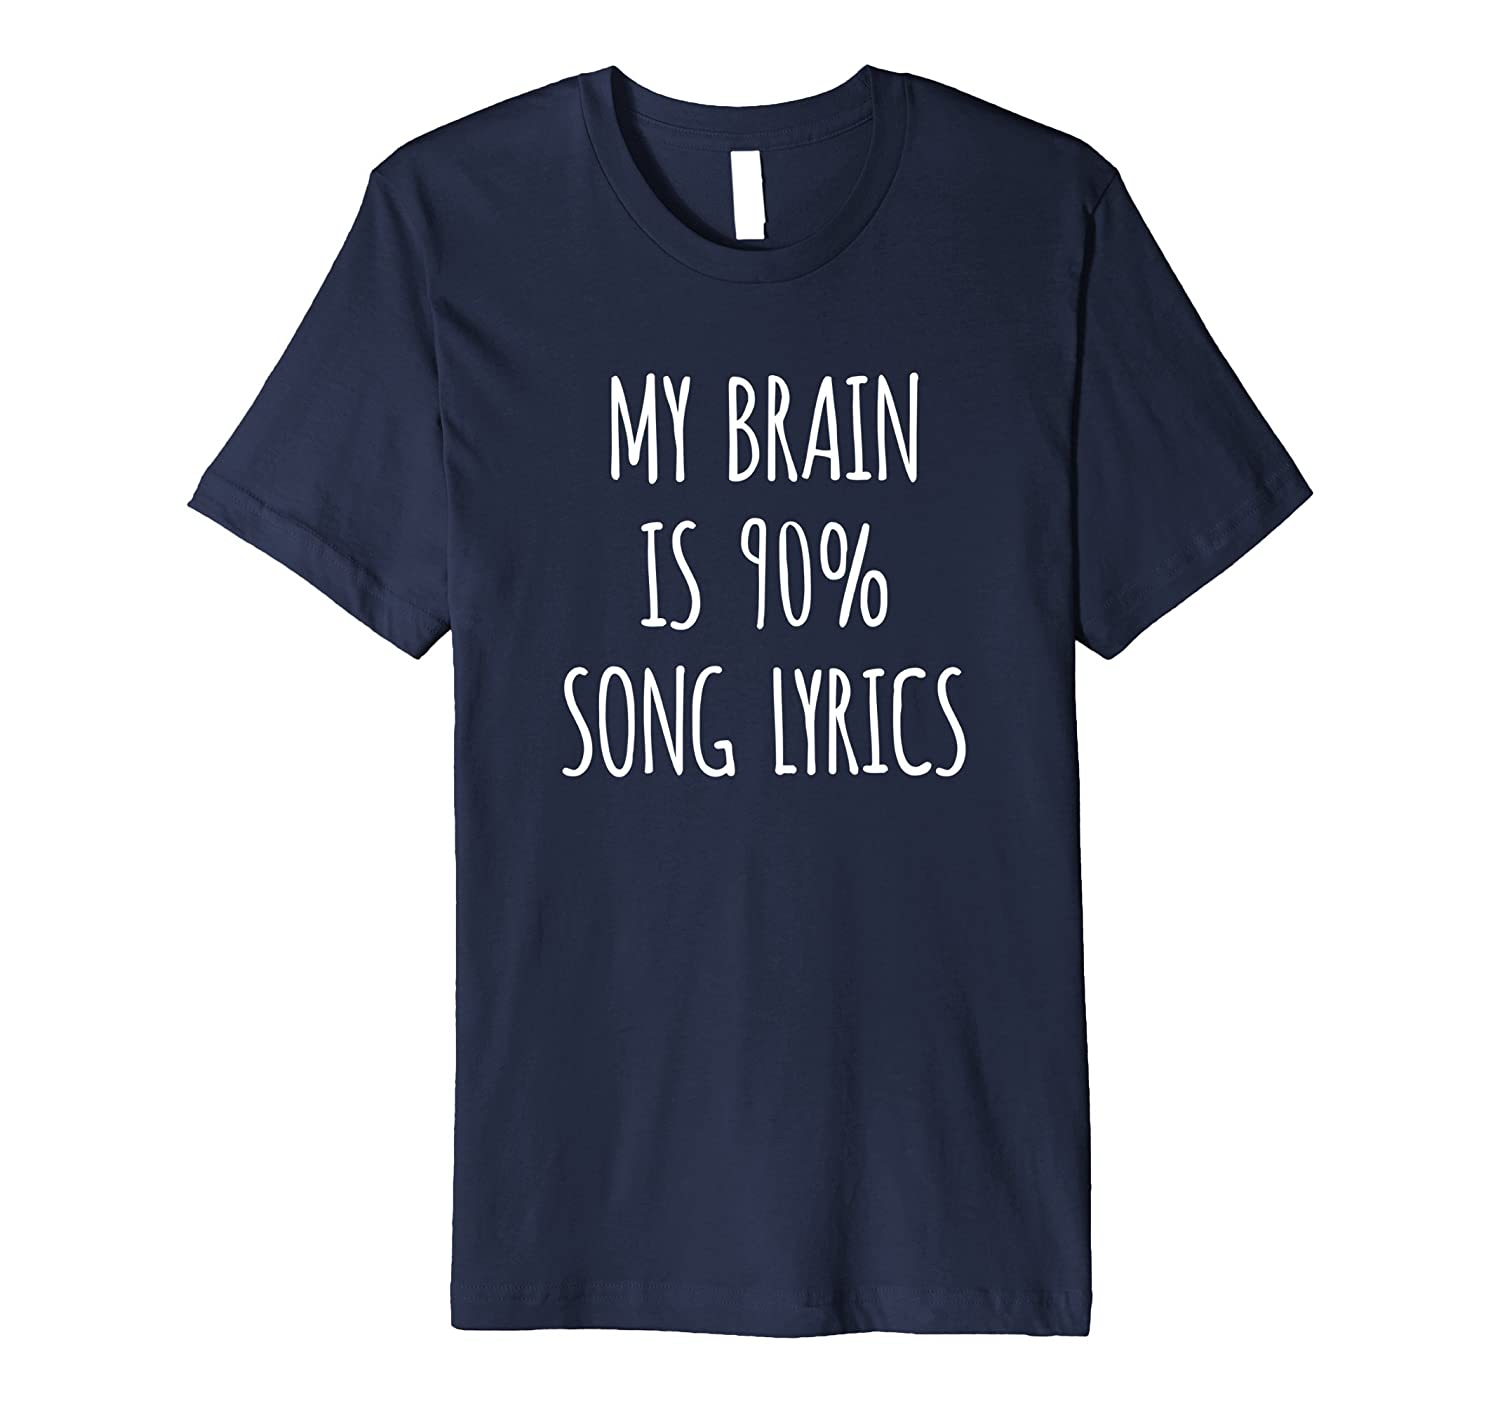 My Brain is 90% Song Lyrics, funny teen t shirt-TH